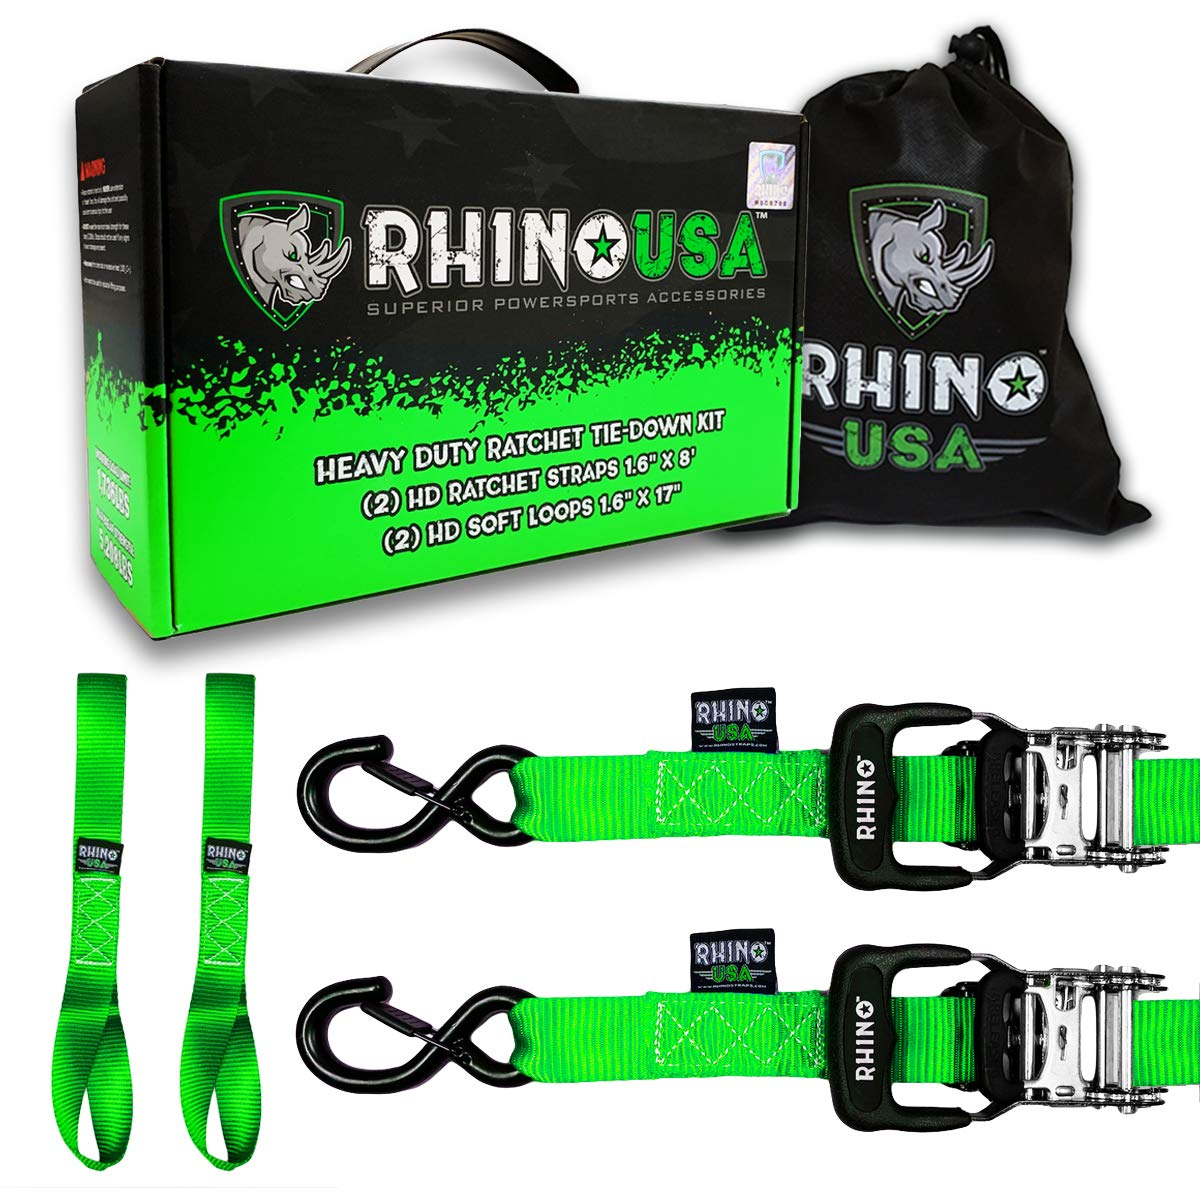 Heavy Duty 1.6 x 8 Rachet Tiedowns with Padded Handles /& Coated Chromoly S Hooks + BLUE 5,208 Break Strength - 2 RHINO USA Ratchet Straps Motorcycle Tie Down Kit Soft Loop Tie-Downs 2